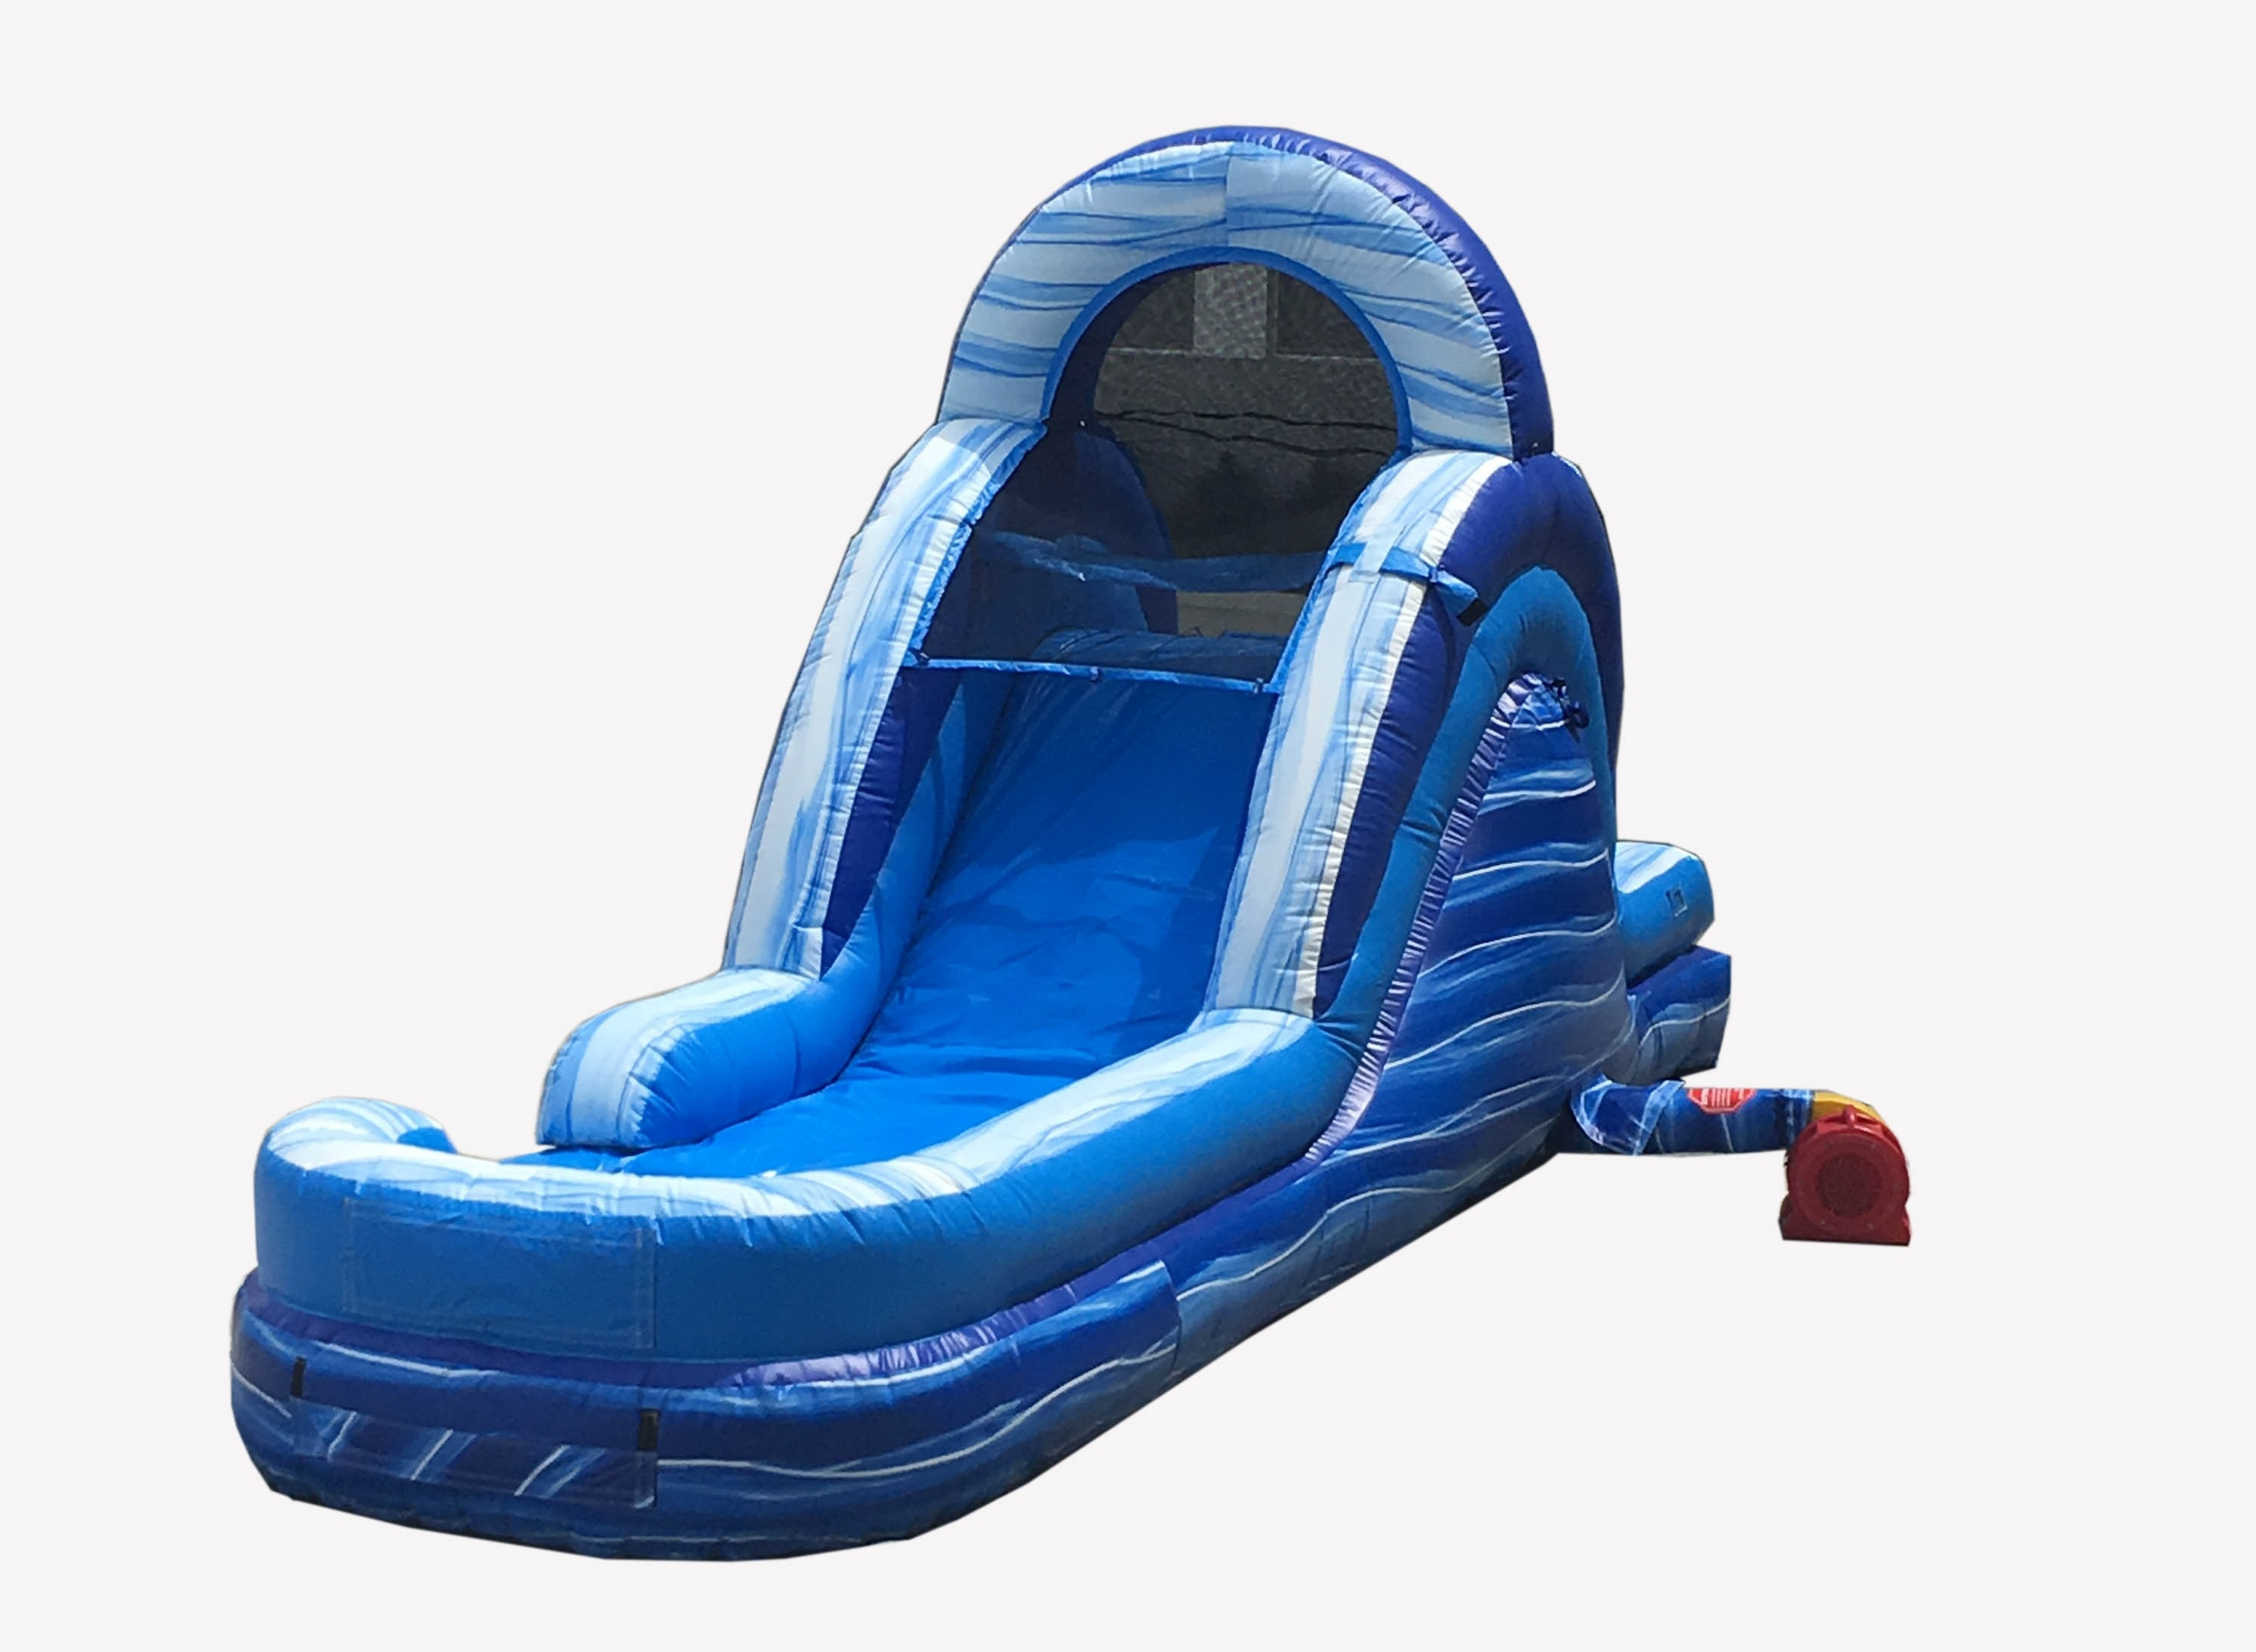 Click here to buy Pogo 12' Blue Marble Commercial Inflatable Waterslide with Blower Kids Bouncy Jumper by Pogo Bounce House.